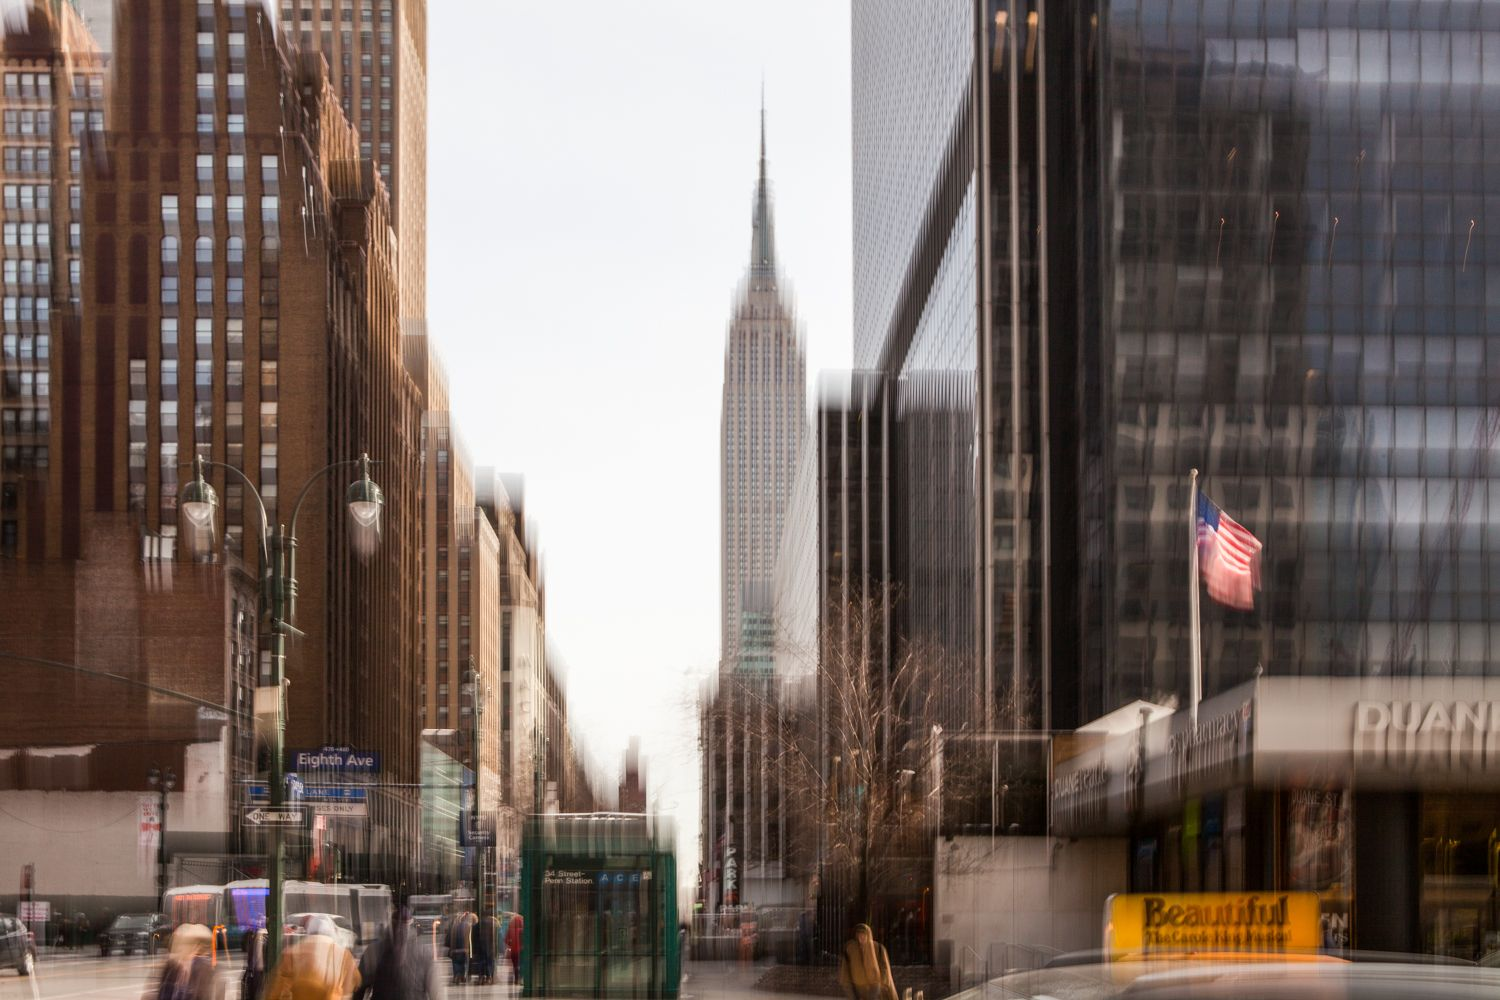 New York Dream 01,Xavier Dumoulin,Photographie contemporaine